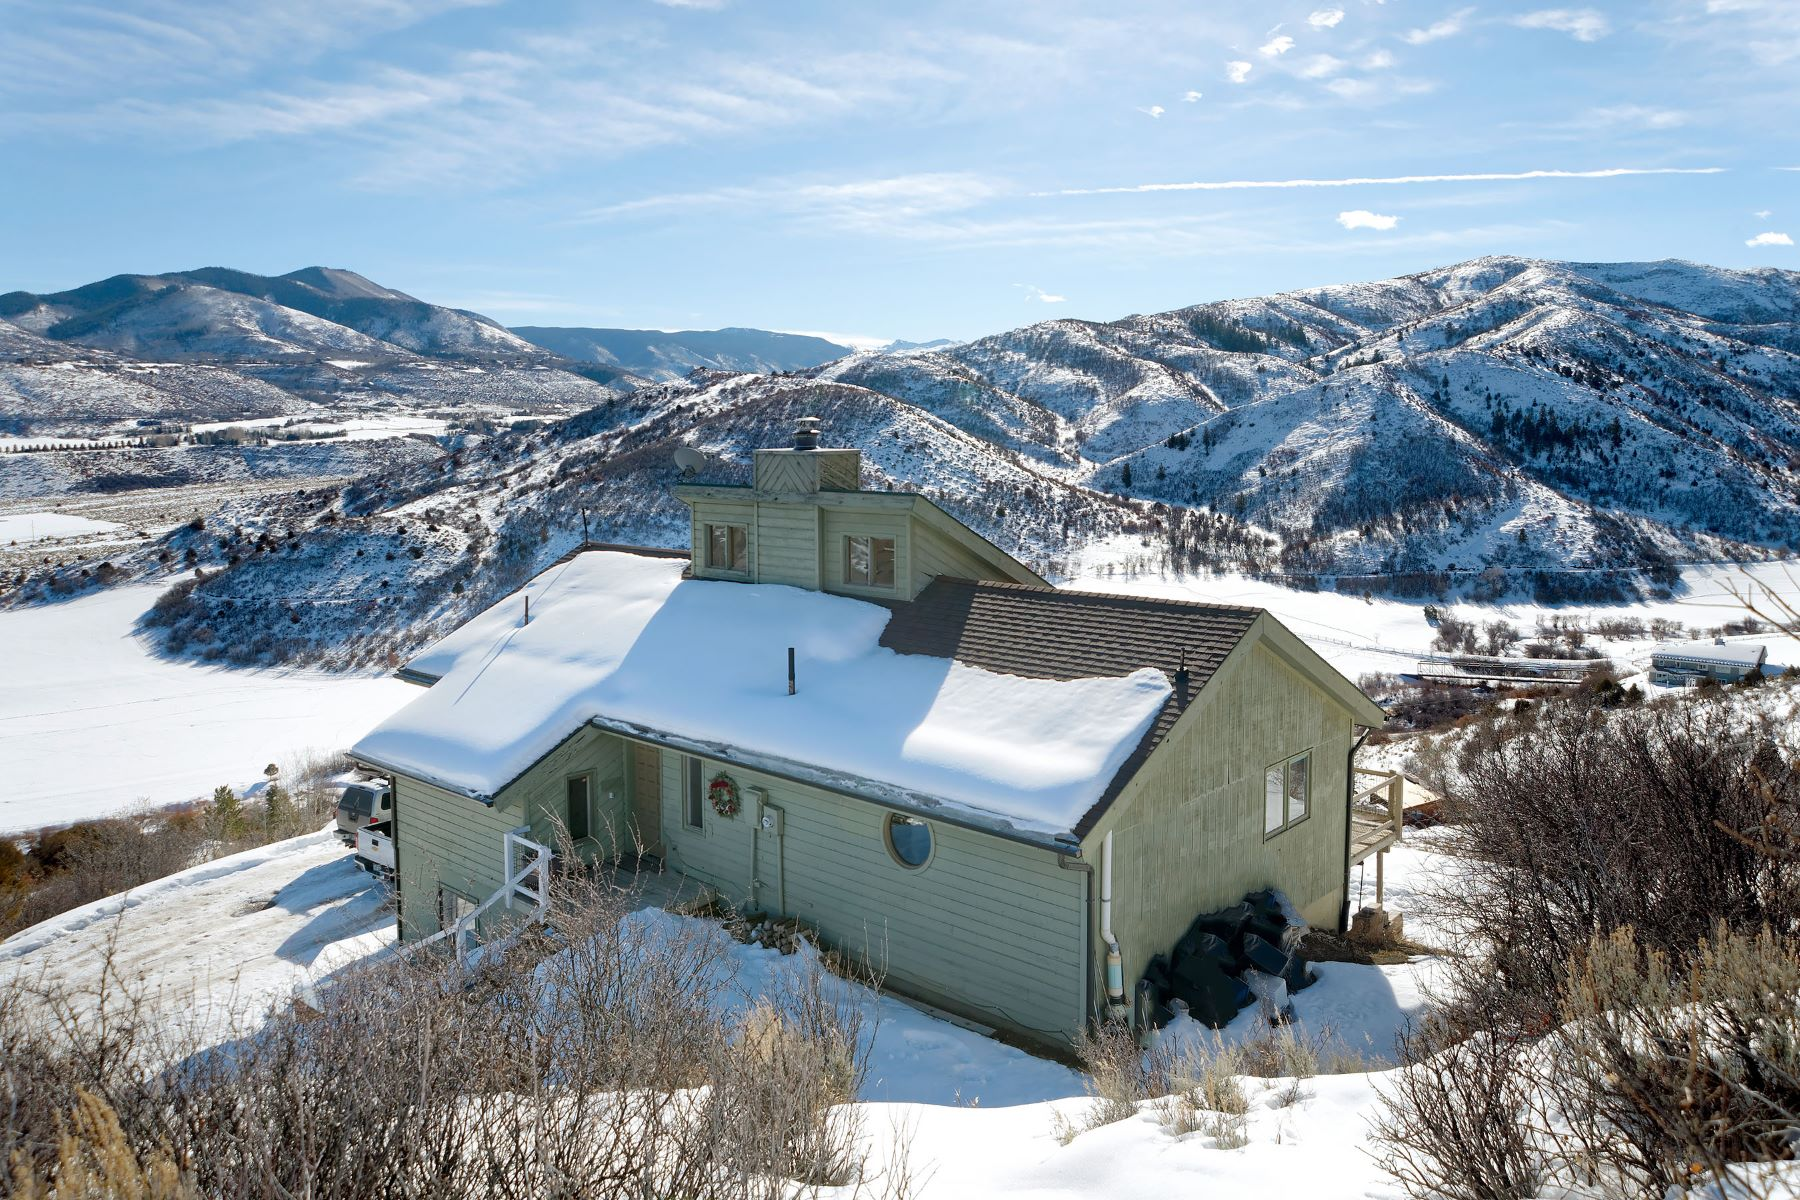 Villa per Vendita alle ore Panoramic Elk Mountain Views from Lenado to Snowmass 91 Solar Way Aspen, Colorado, 81611 Stati Uniti